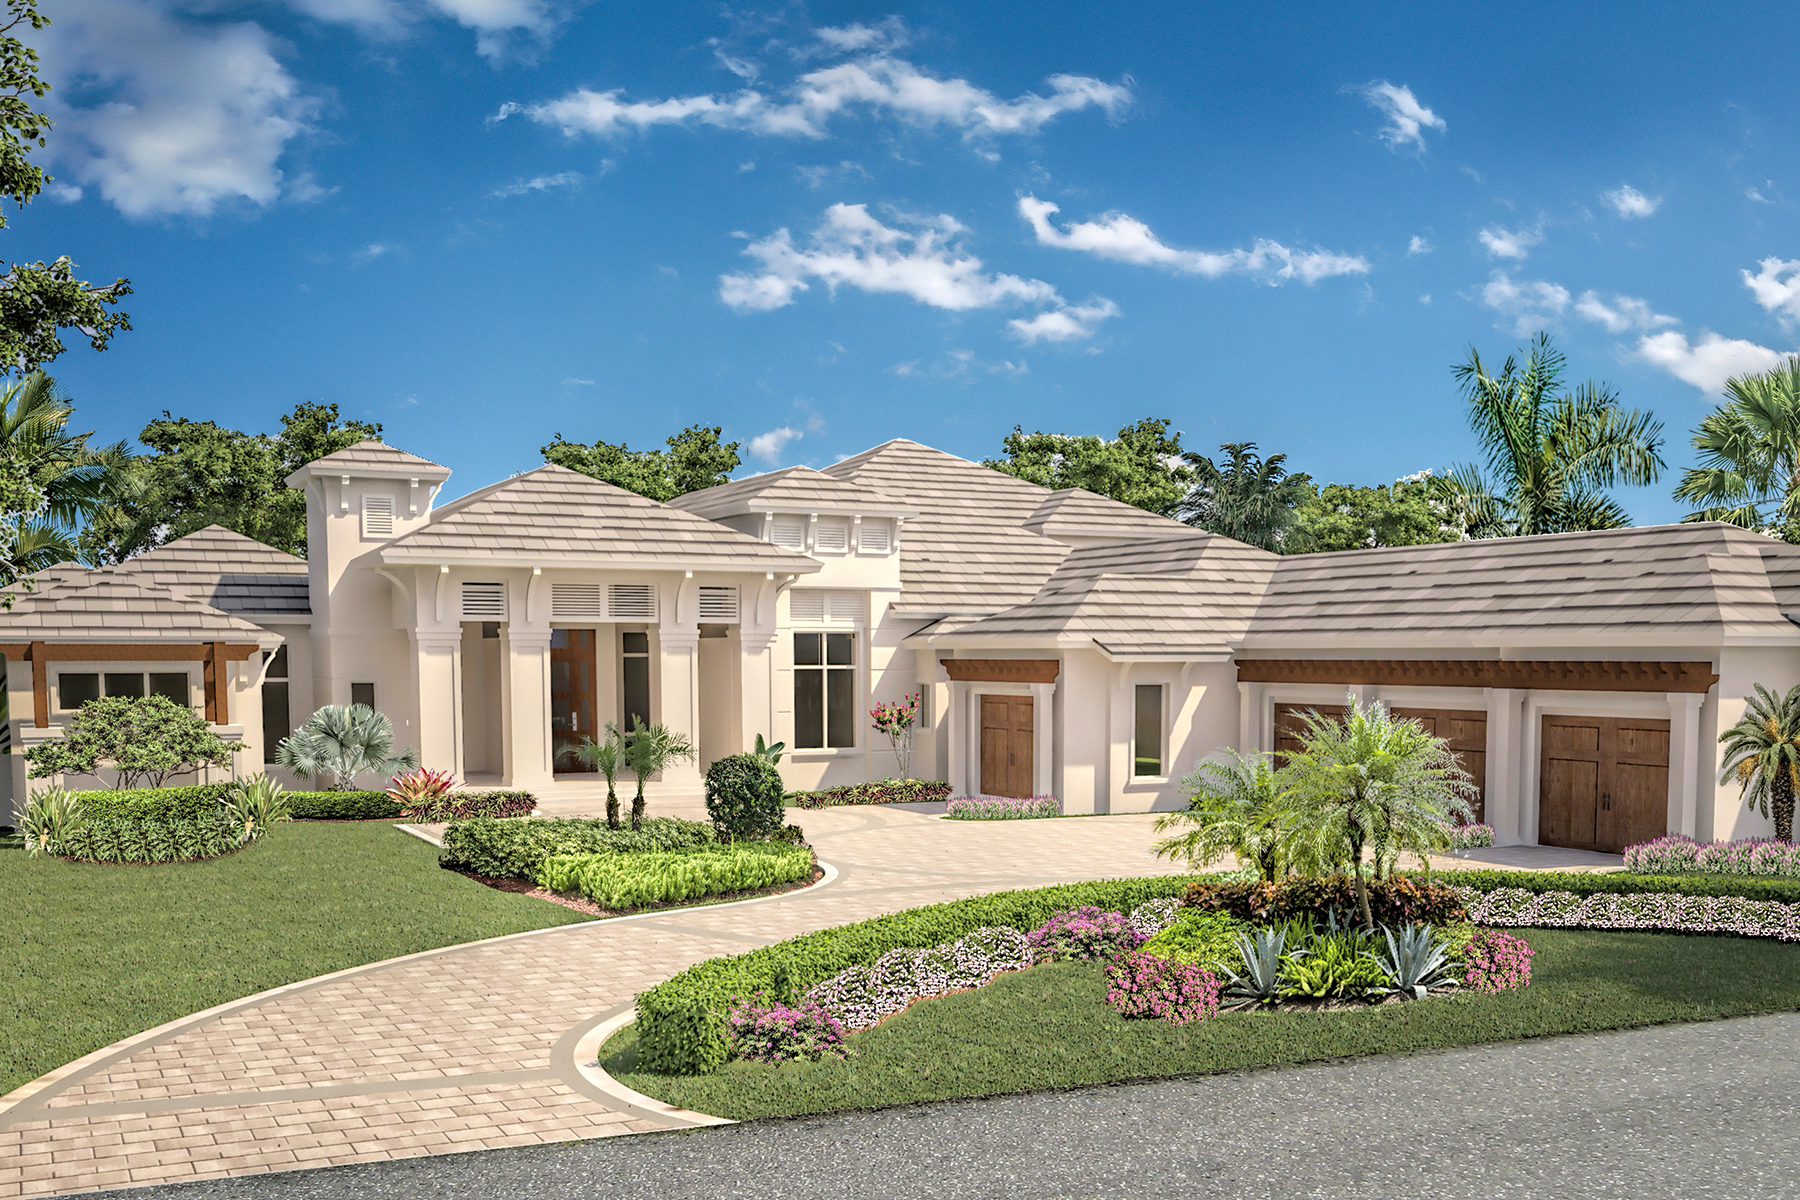 Casa Unifamiliar por un Venta en 1245 Gordon River Trl , Naples, FL 34105 1245 Gordon River Trl Naples, Florida, 34105 Estados Unidos